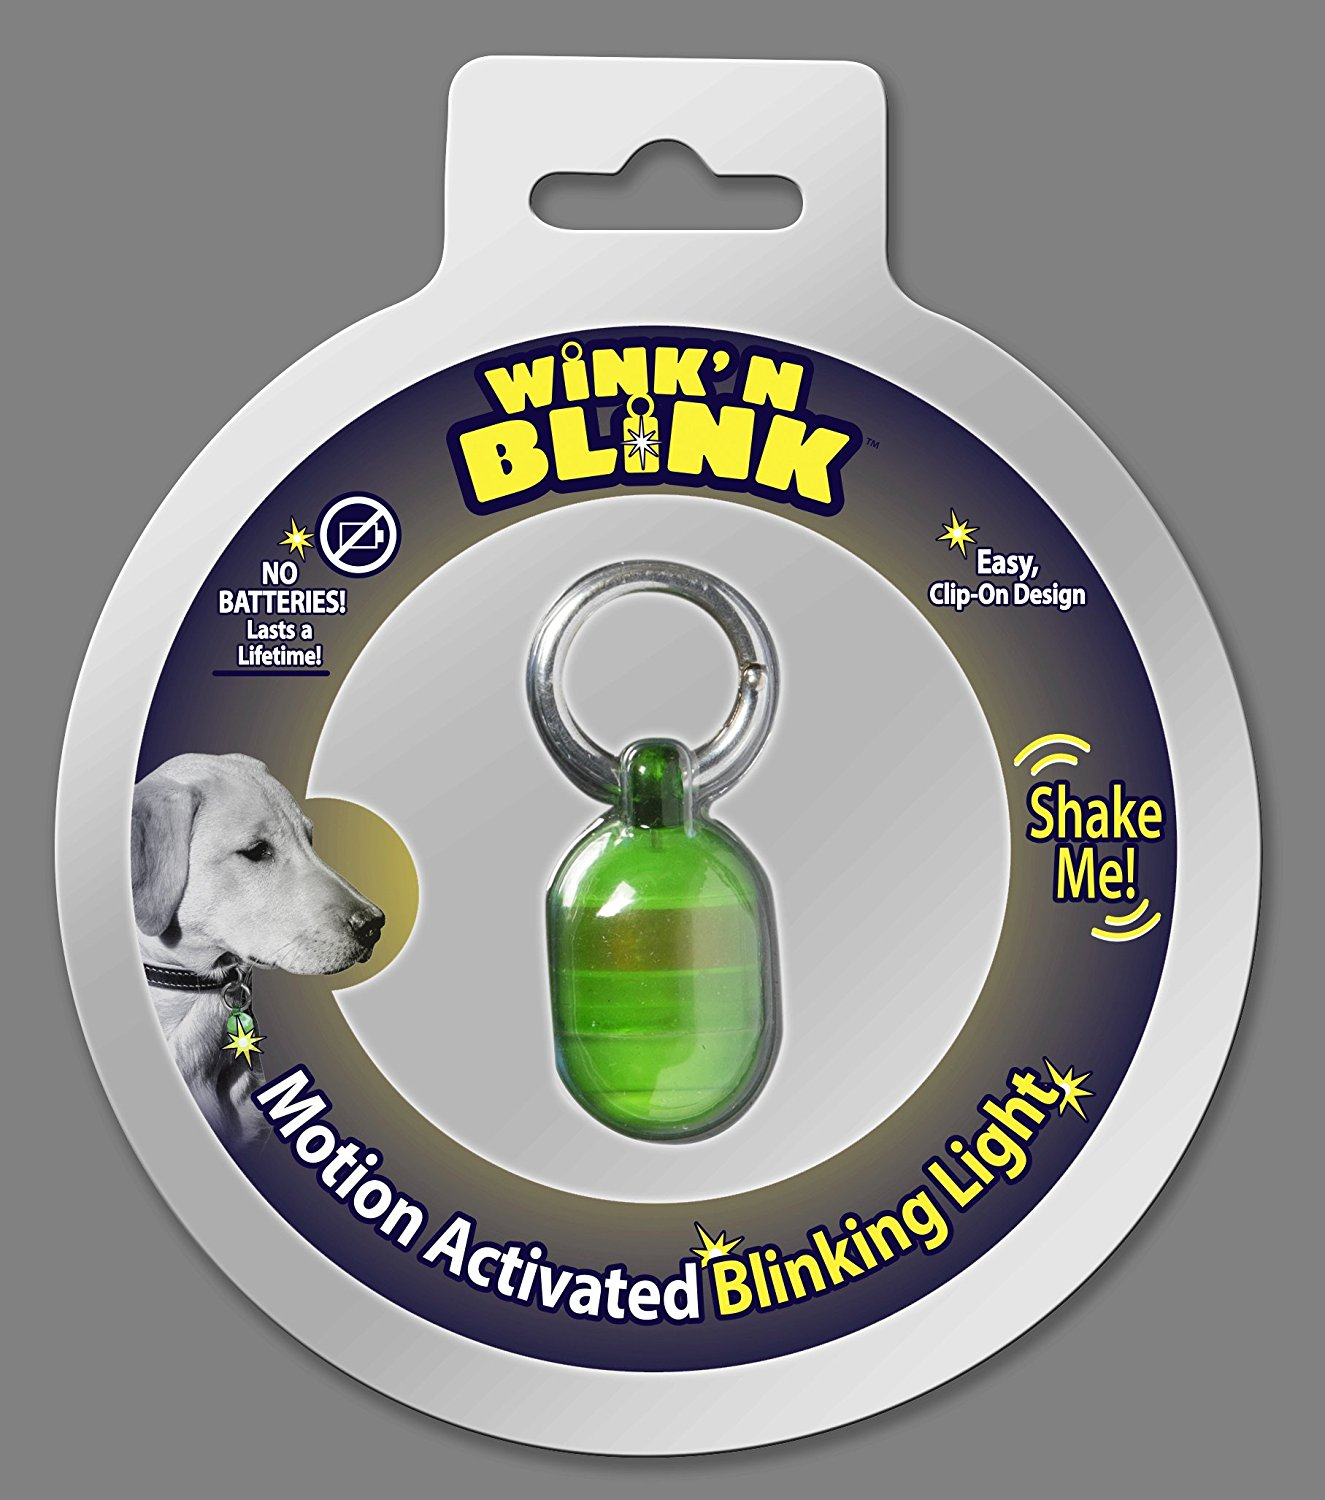 Wink'n Blink Motion Activated Blinking Light